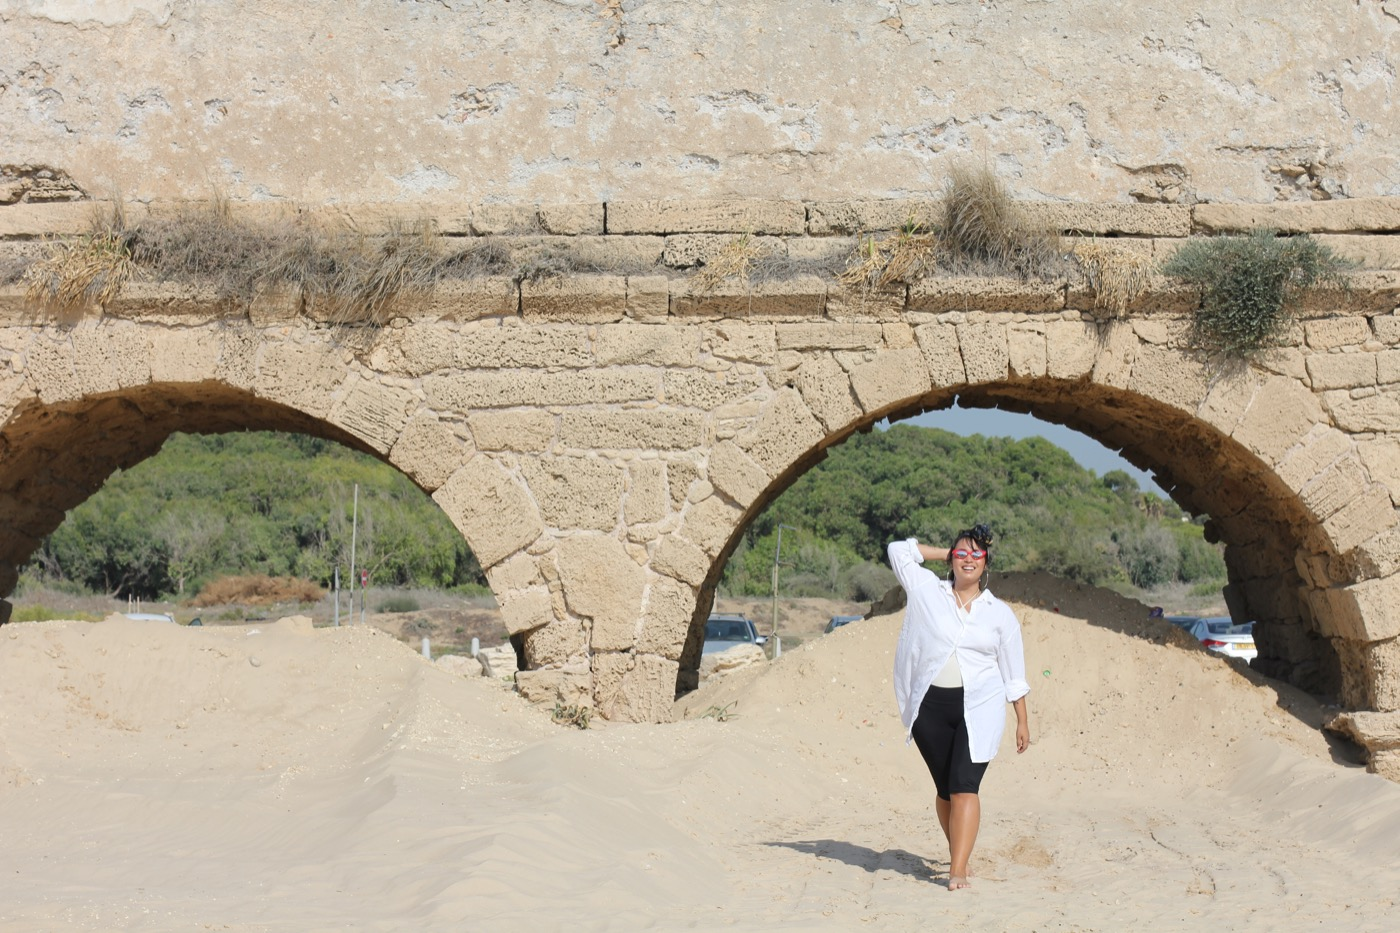 Location: Caesarea Aqueducts Beach,  Caesarea National Par k, Israel